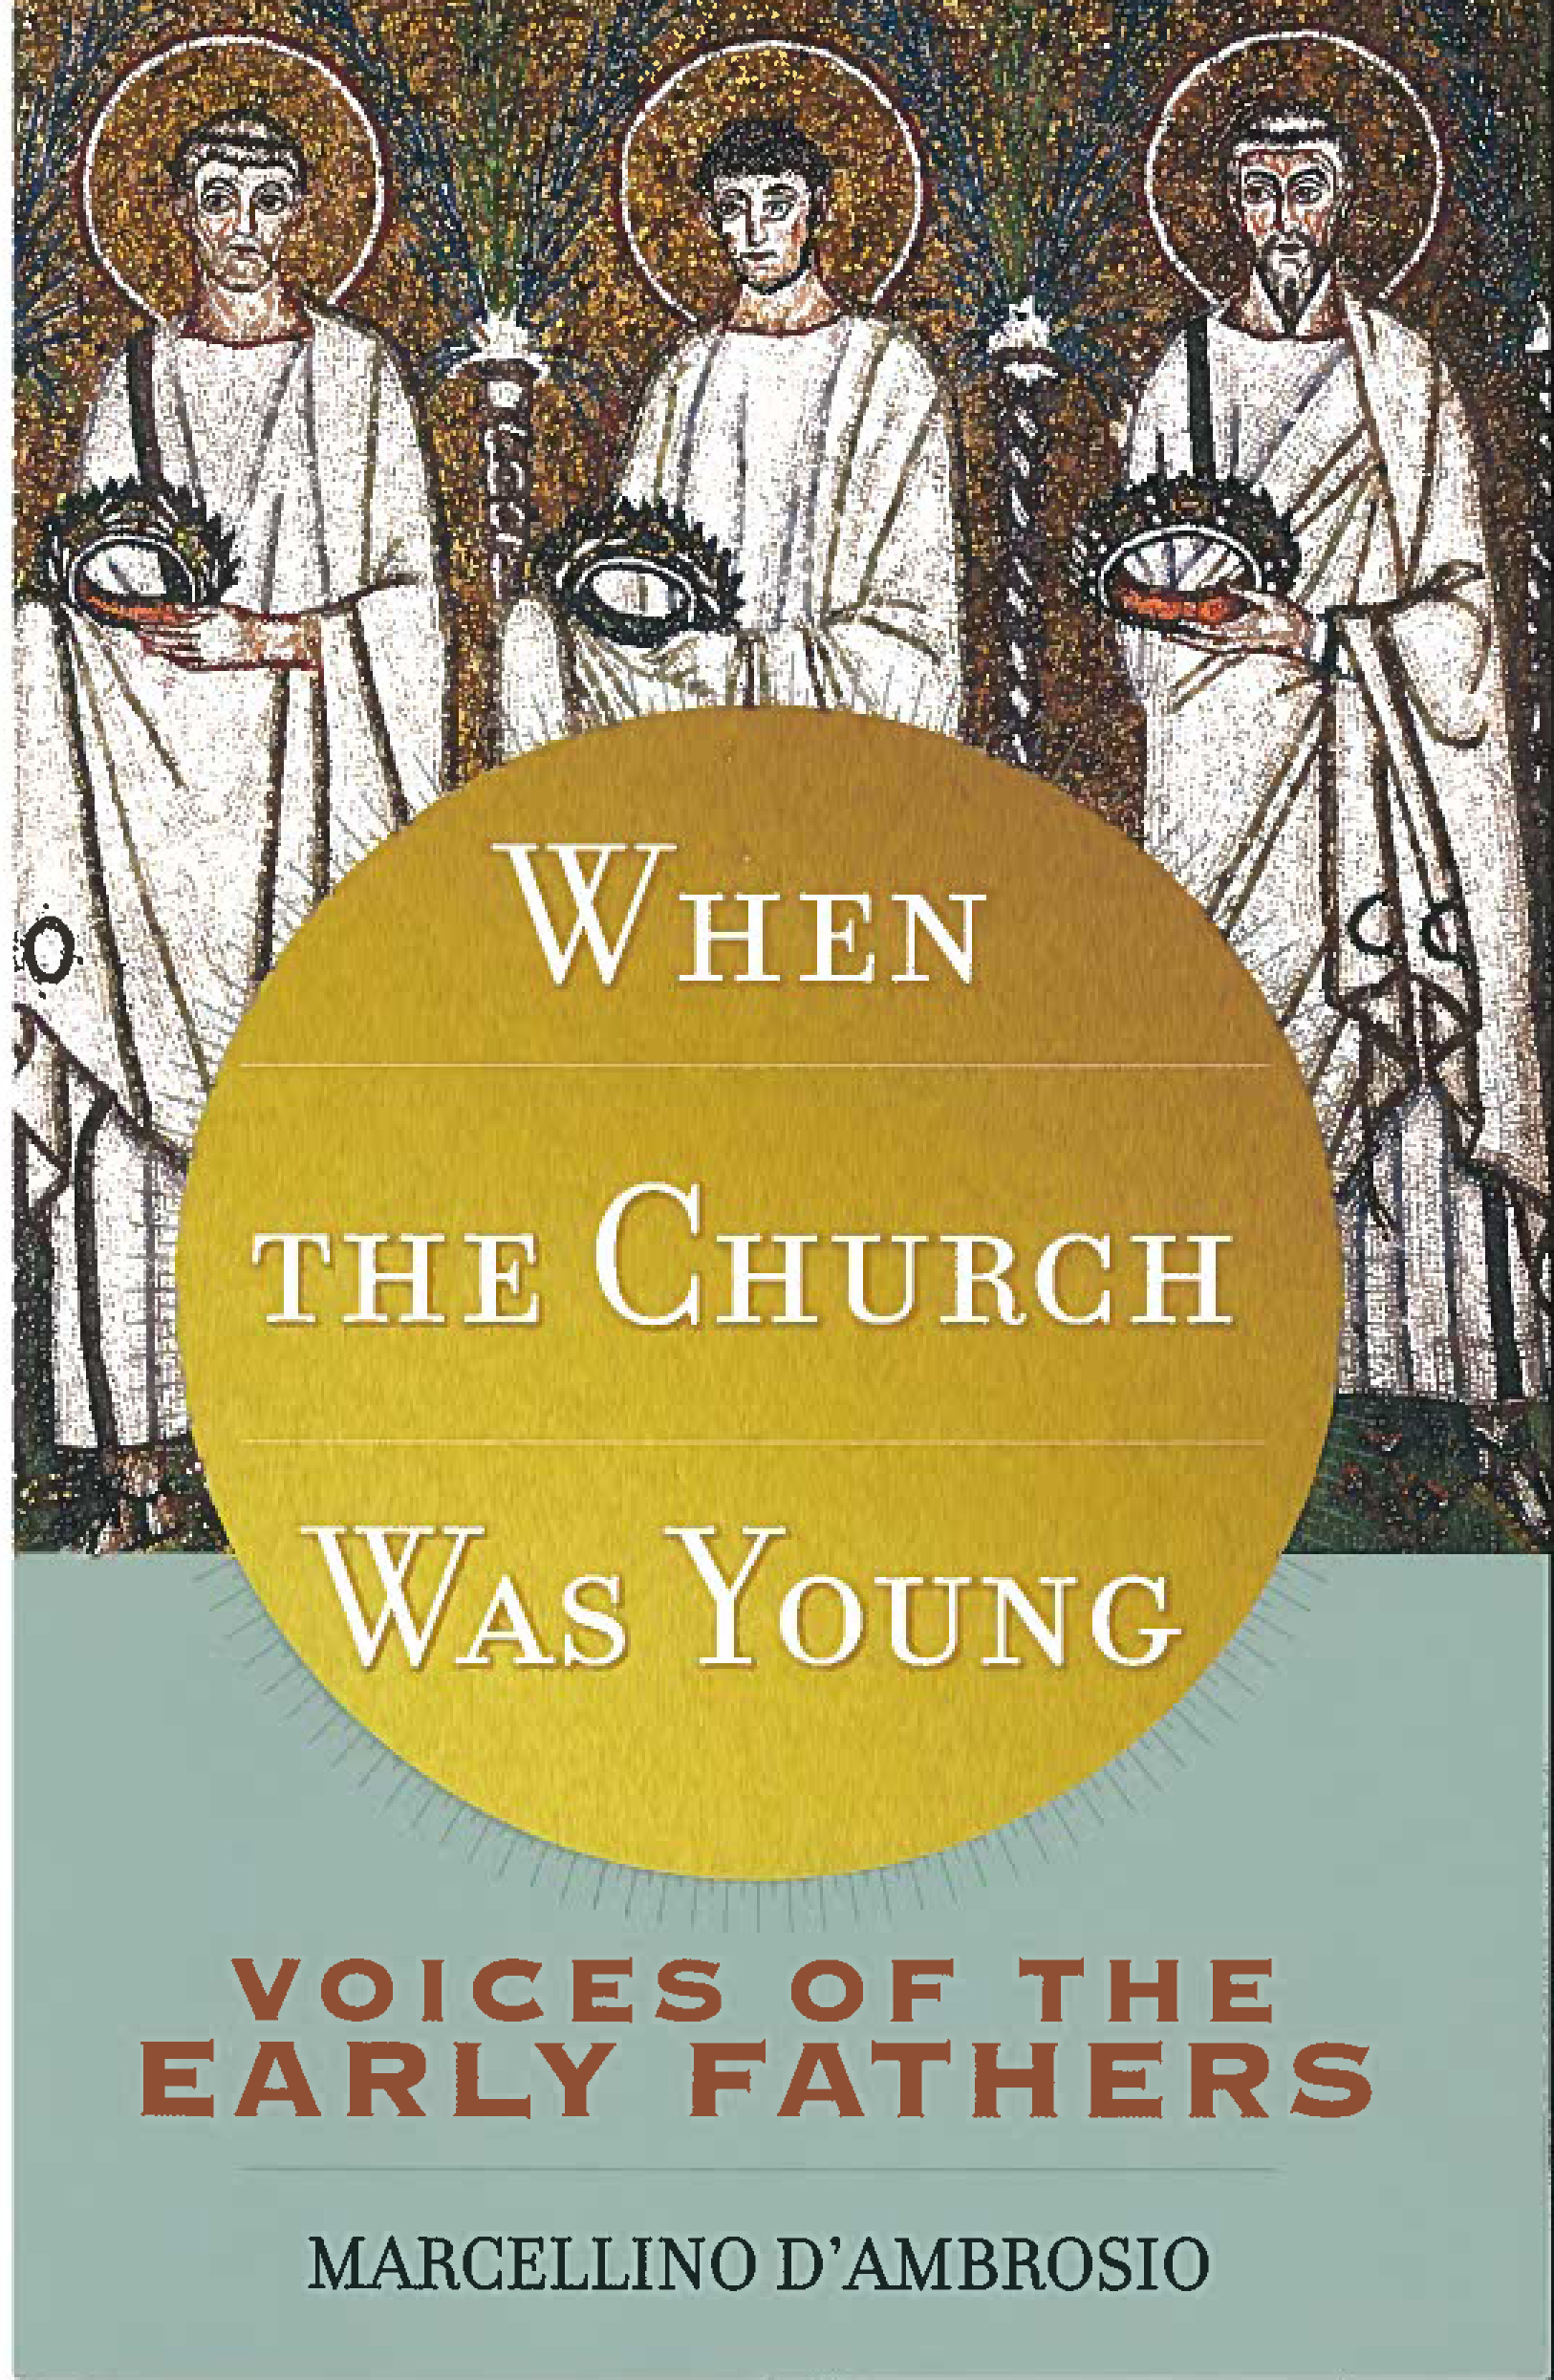 When The Church Was Young: Voices of the Early Fathers by Marcellino D'Ambrosio 108-9781616367770